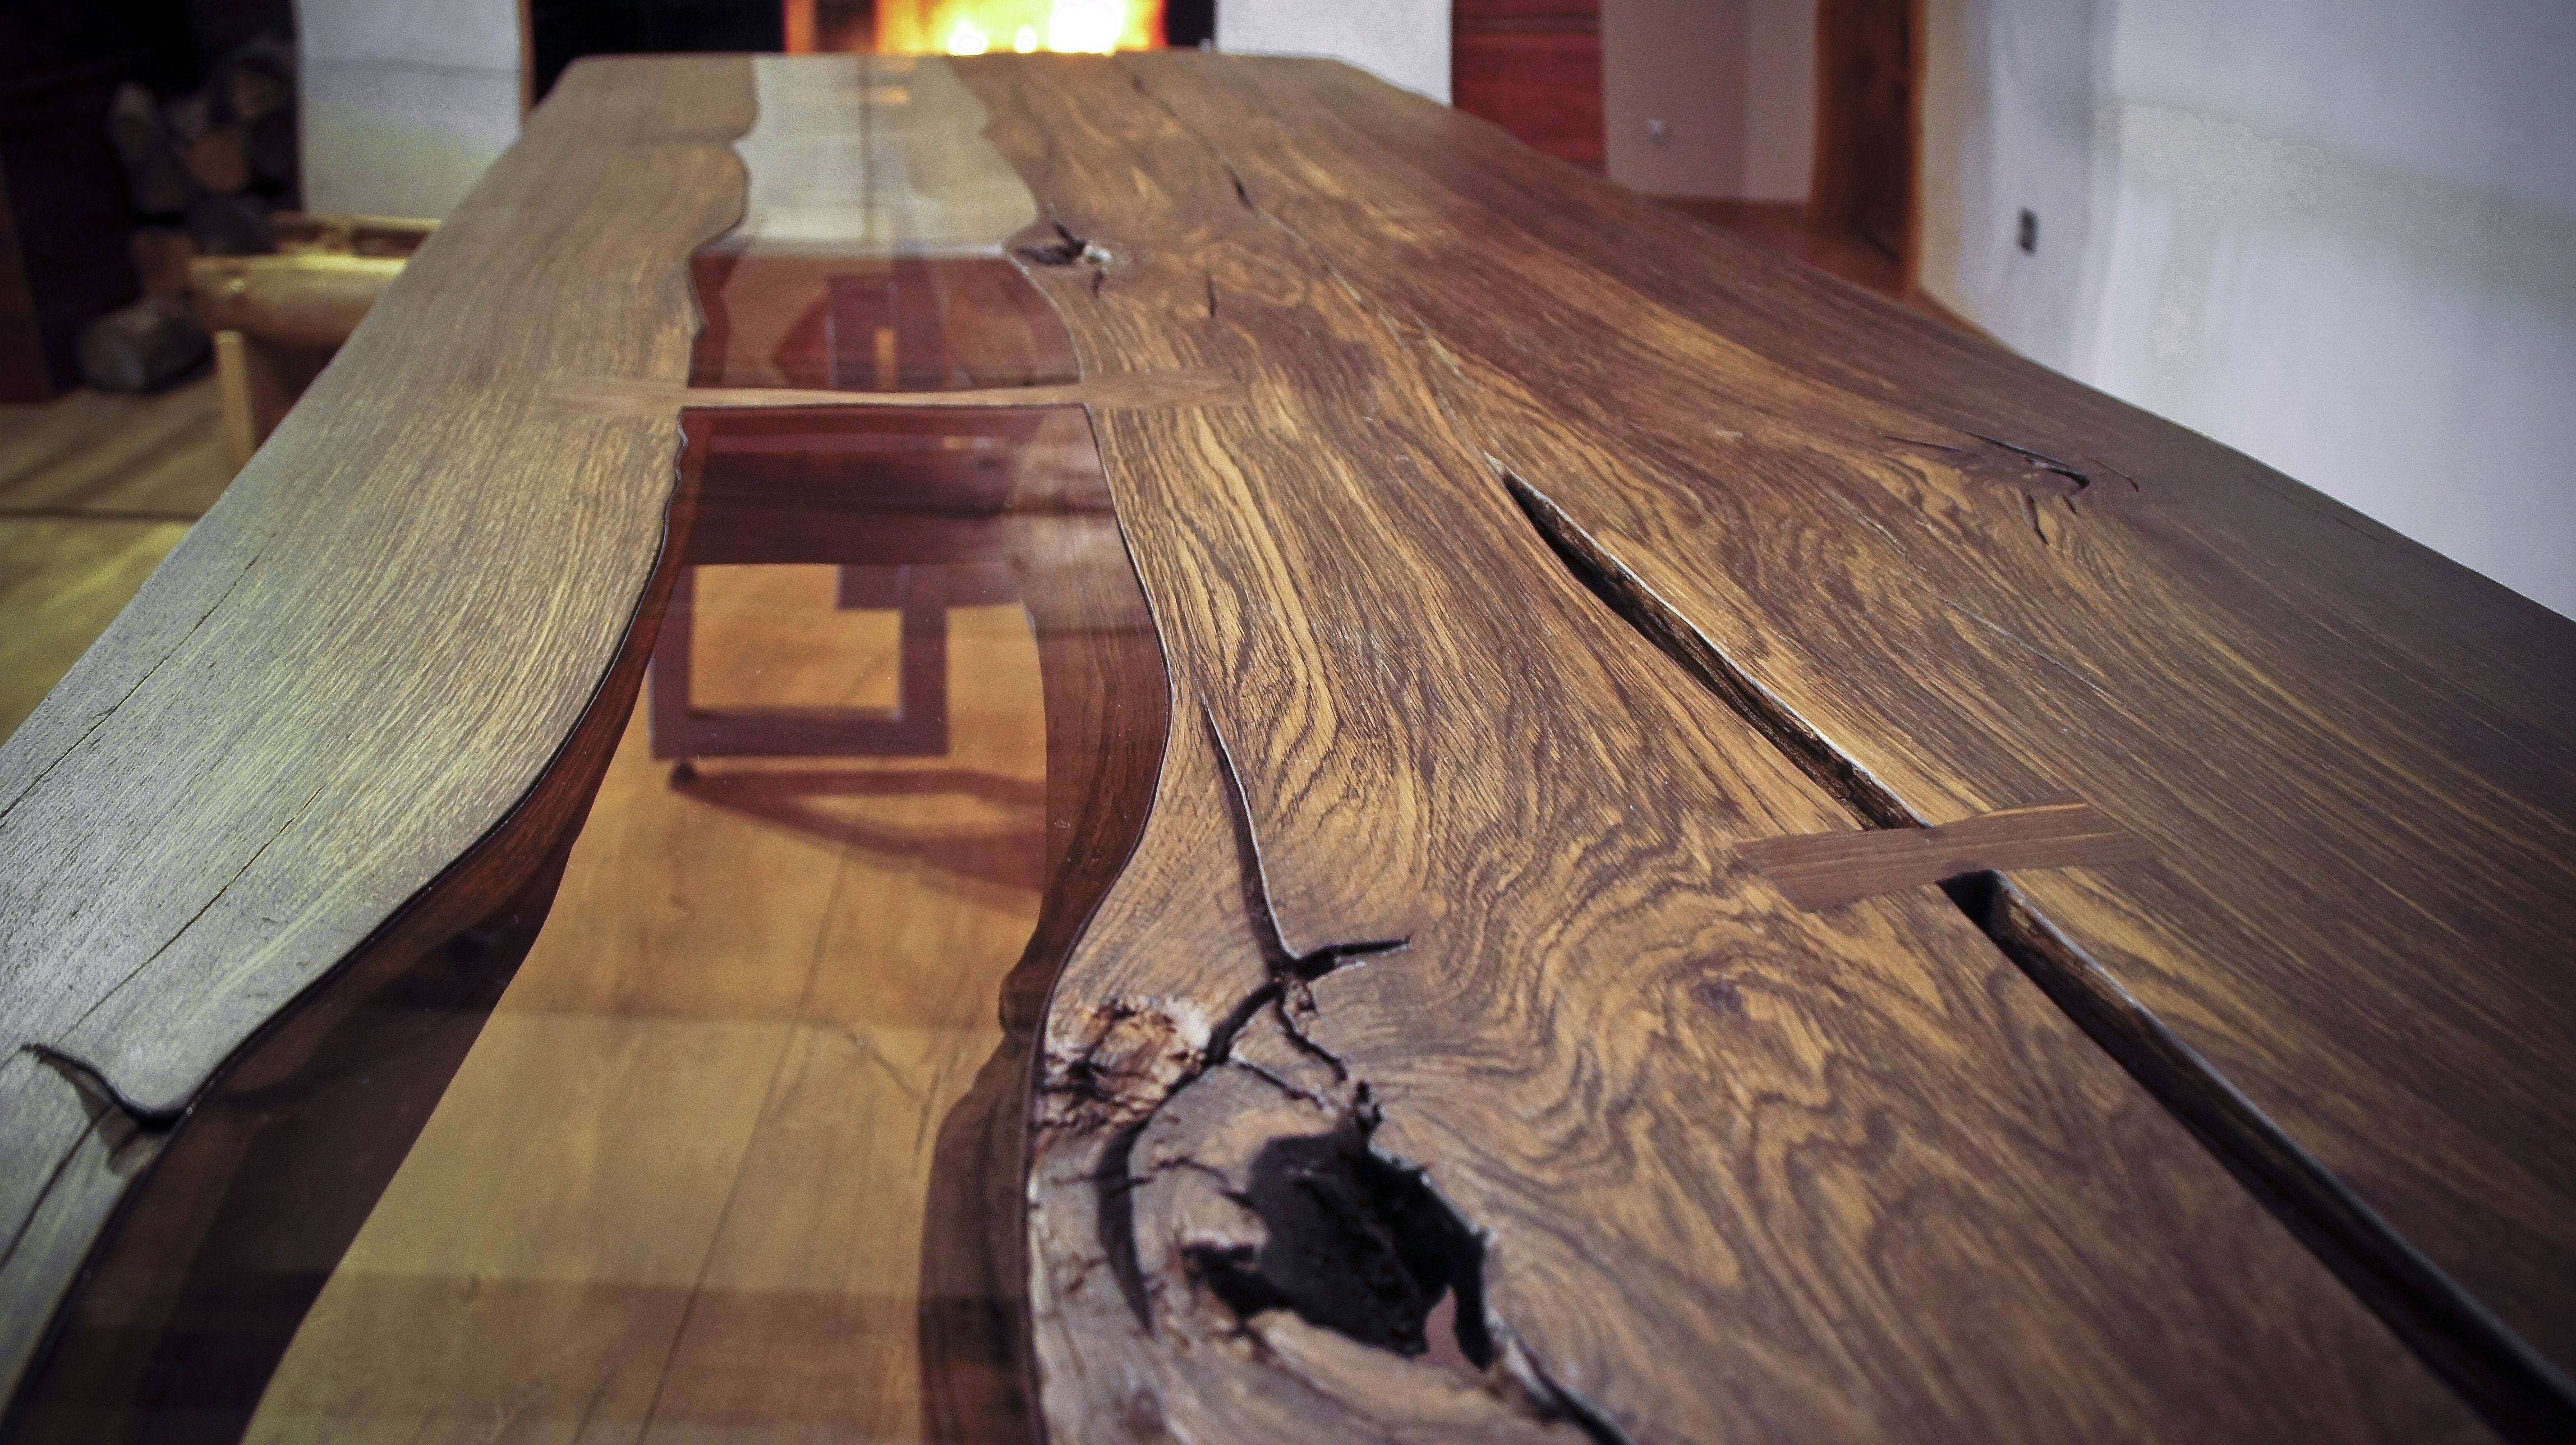 bog oak oak tables wooden tables real wood the only one in the